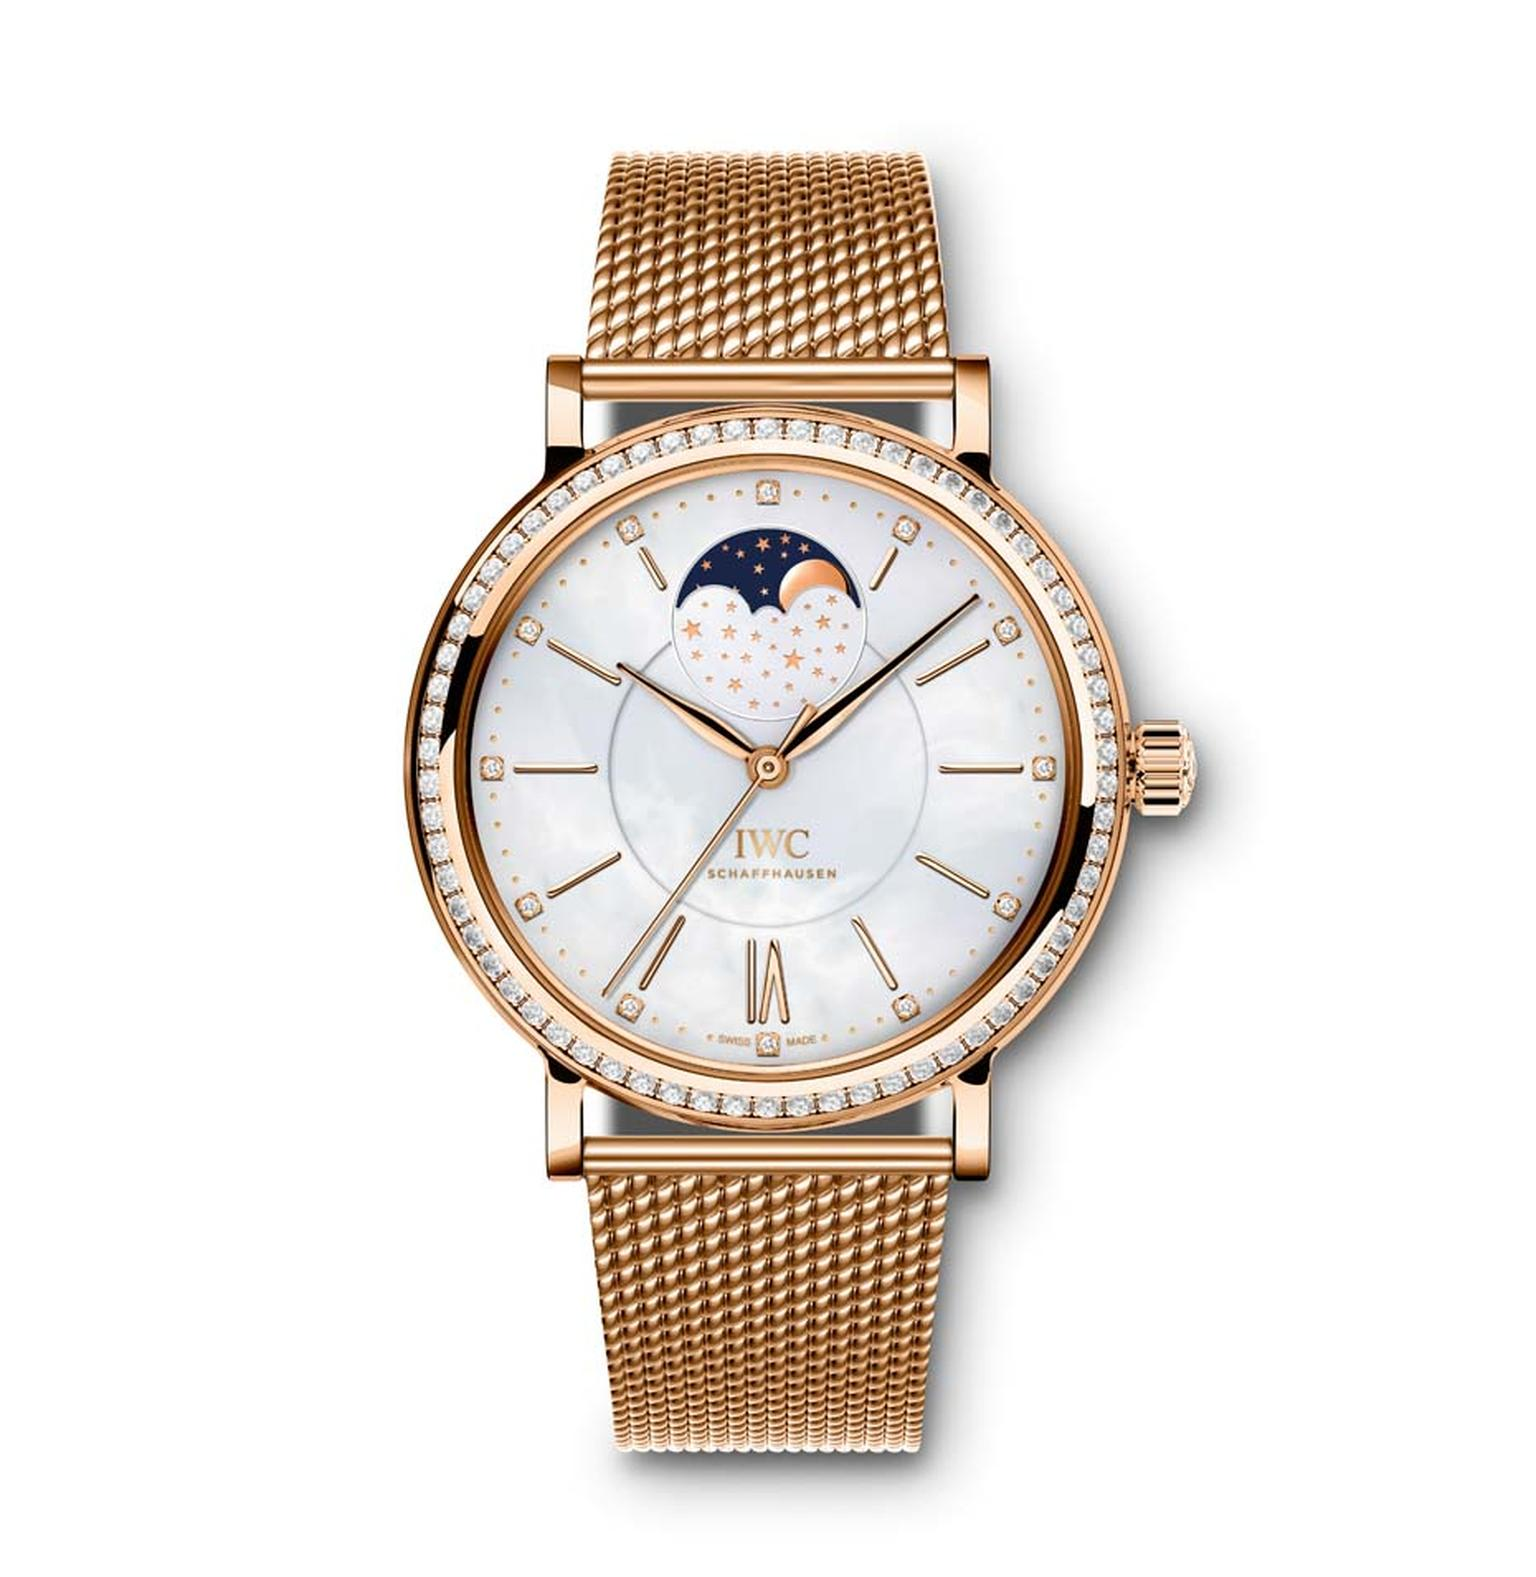 IWC's Portofino Midsize Automatic Moon Phase Ref. IW459005 watch features a red gold case set with 66 diamonds, a white mother-of-pearl dial set with 12 diamonds and a Milanese red gold mesh bracelet.